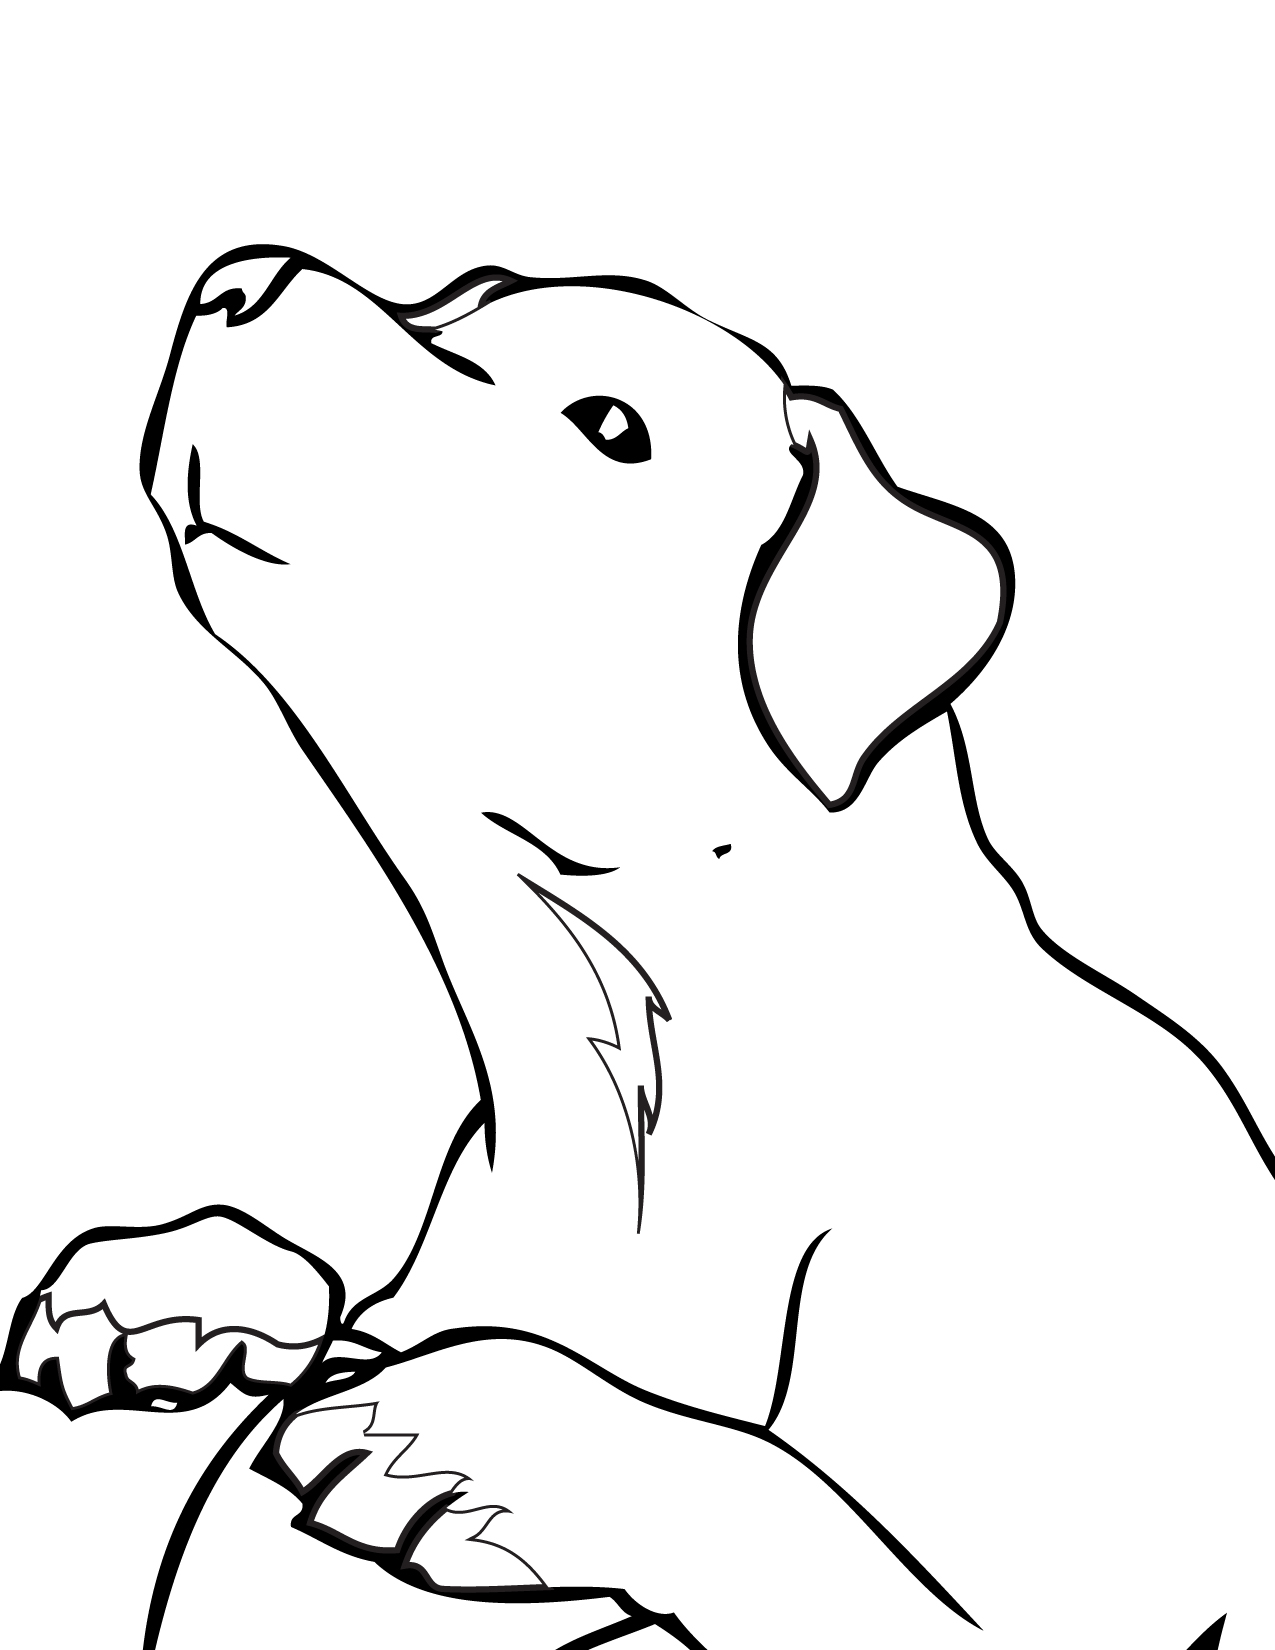 Golden retriever puppy coloring page | Free Printable Coloring Pages | 1650x1275